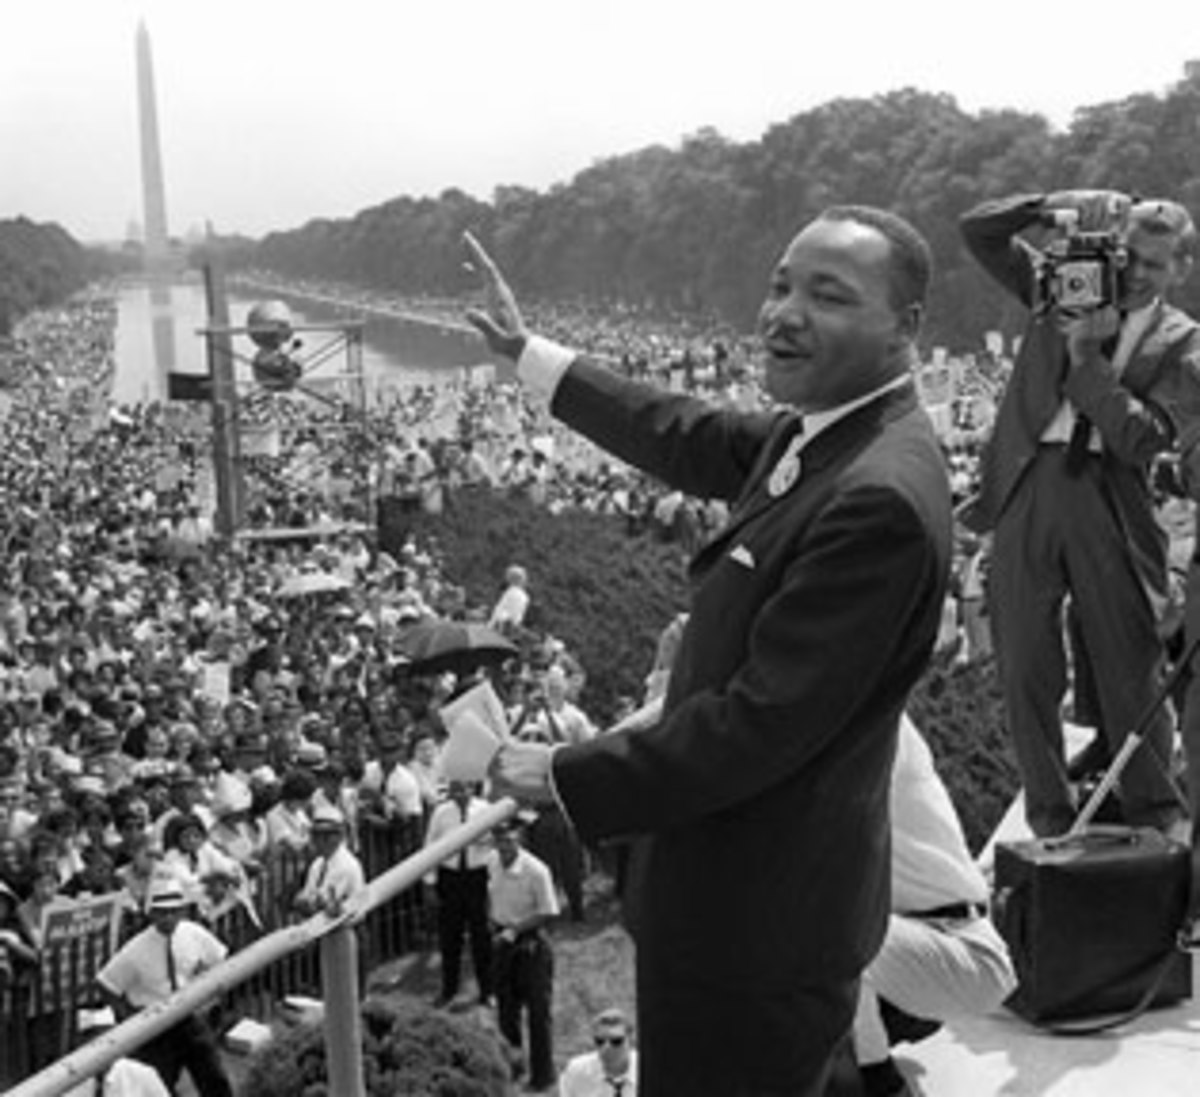 The morning of the March on Washington, Dr. King still hadn't finalized what would become the defining speech of the civil rights movement.